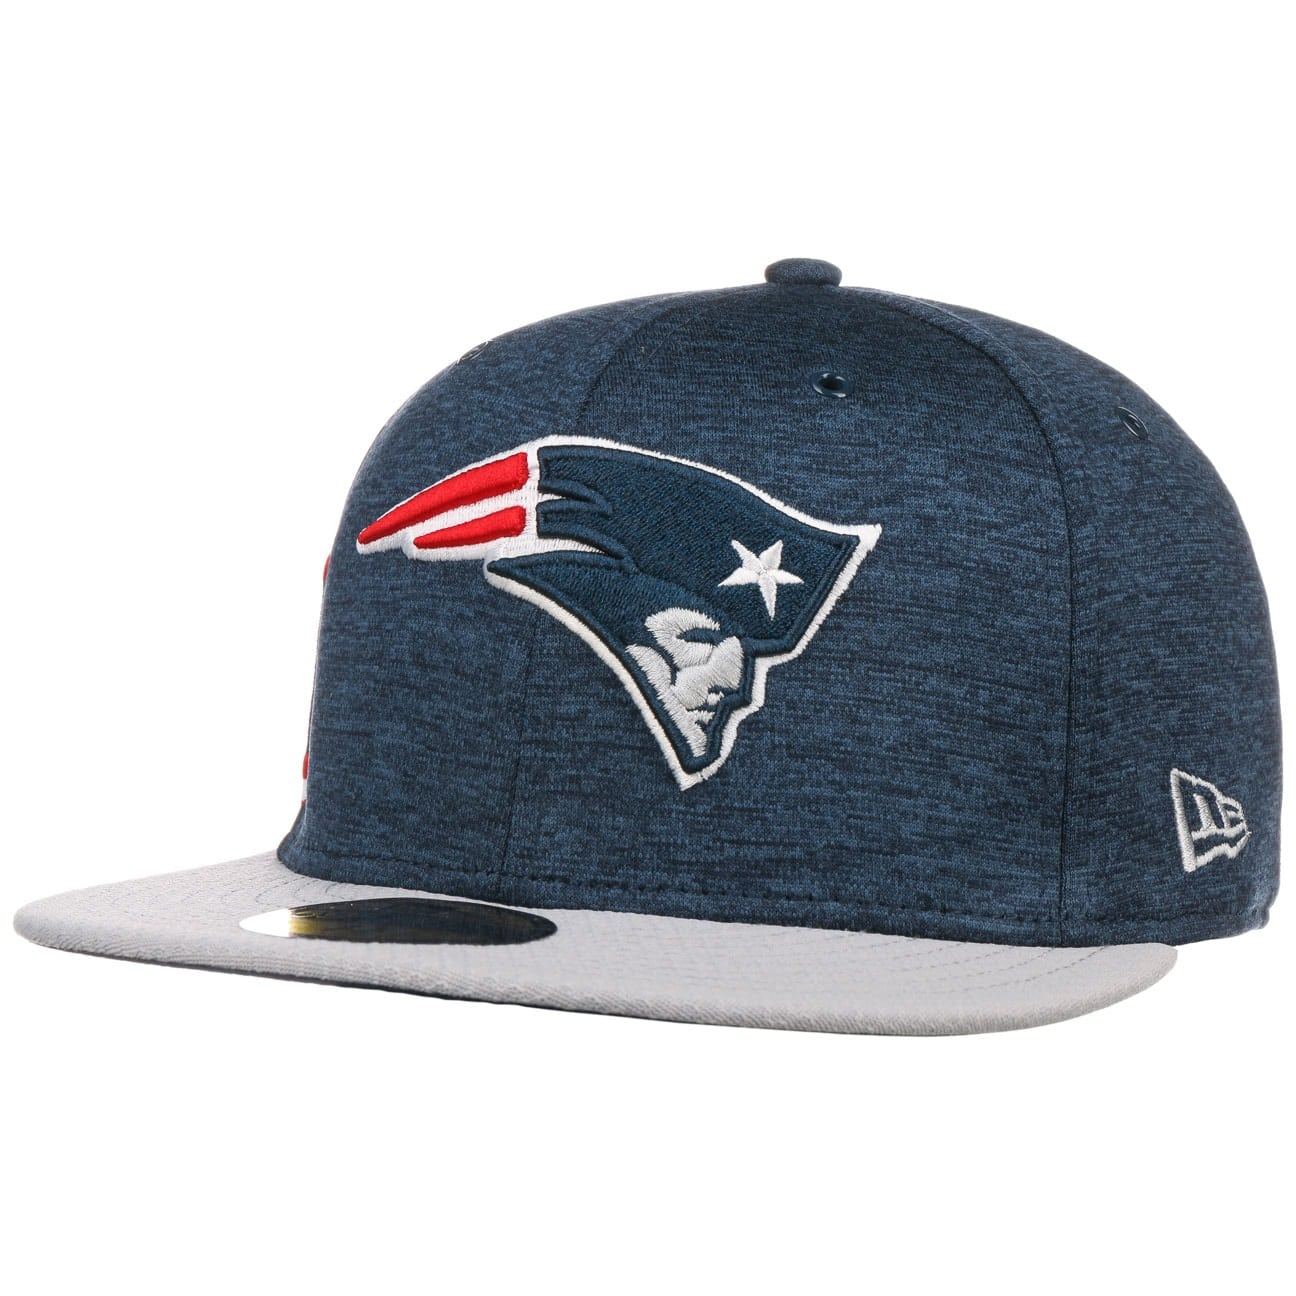 59fifty-on-field-18-patriots-cap-by-new-era-basecap